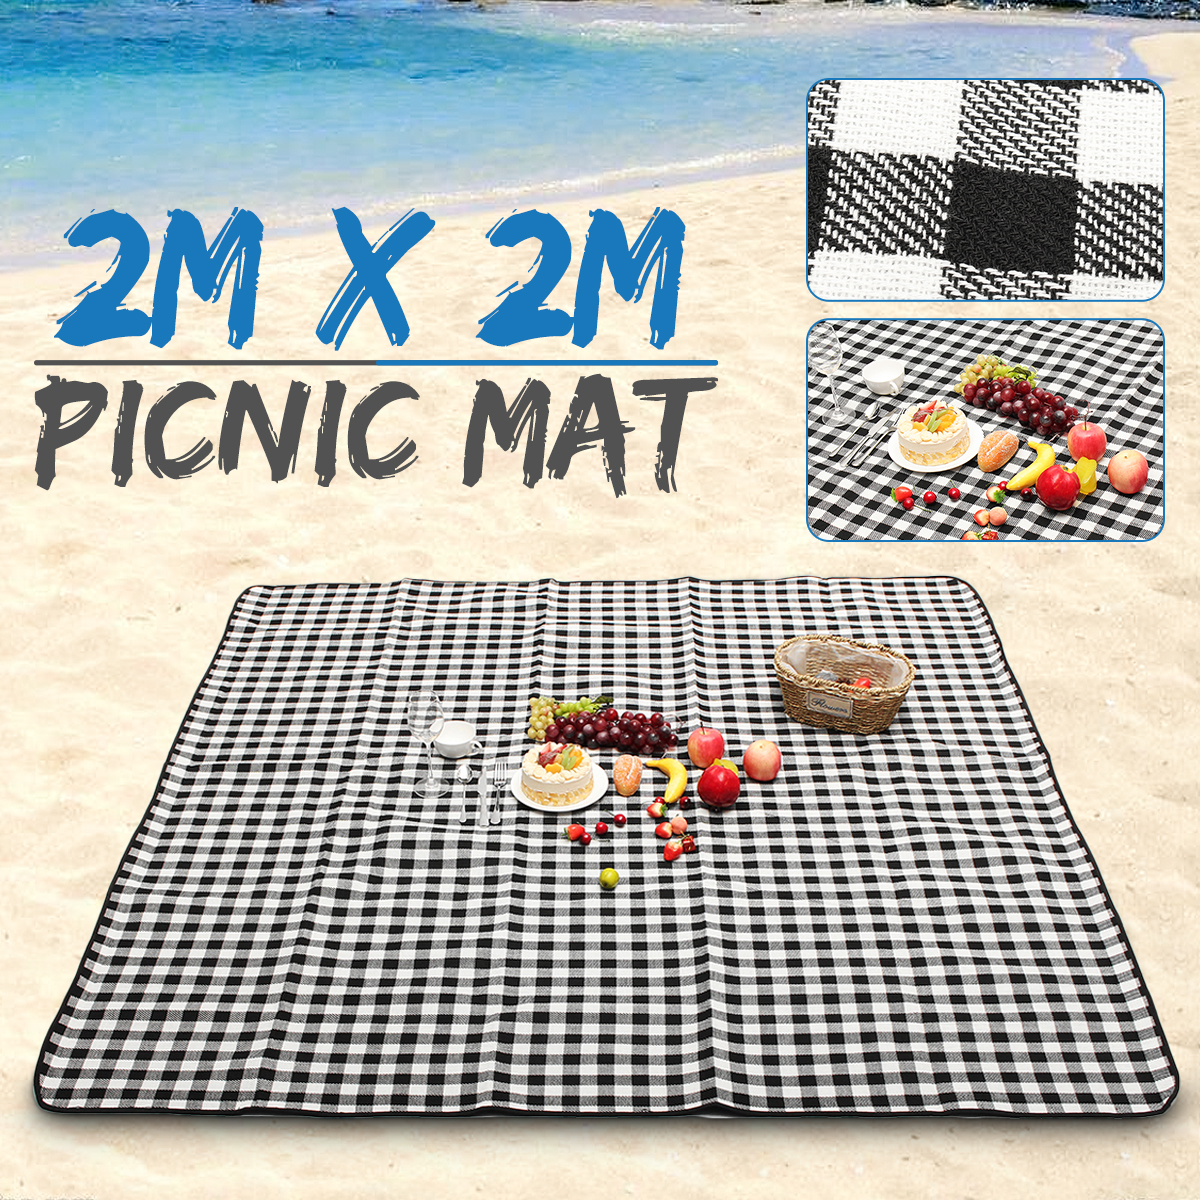 Waterproof Picnic Blanket 200X200cm Large Washable Black Rug Mat Camping Travel Outdoor Home Play Mat fondovalle rug home inserto rosone 60x60